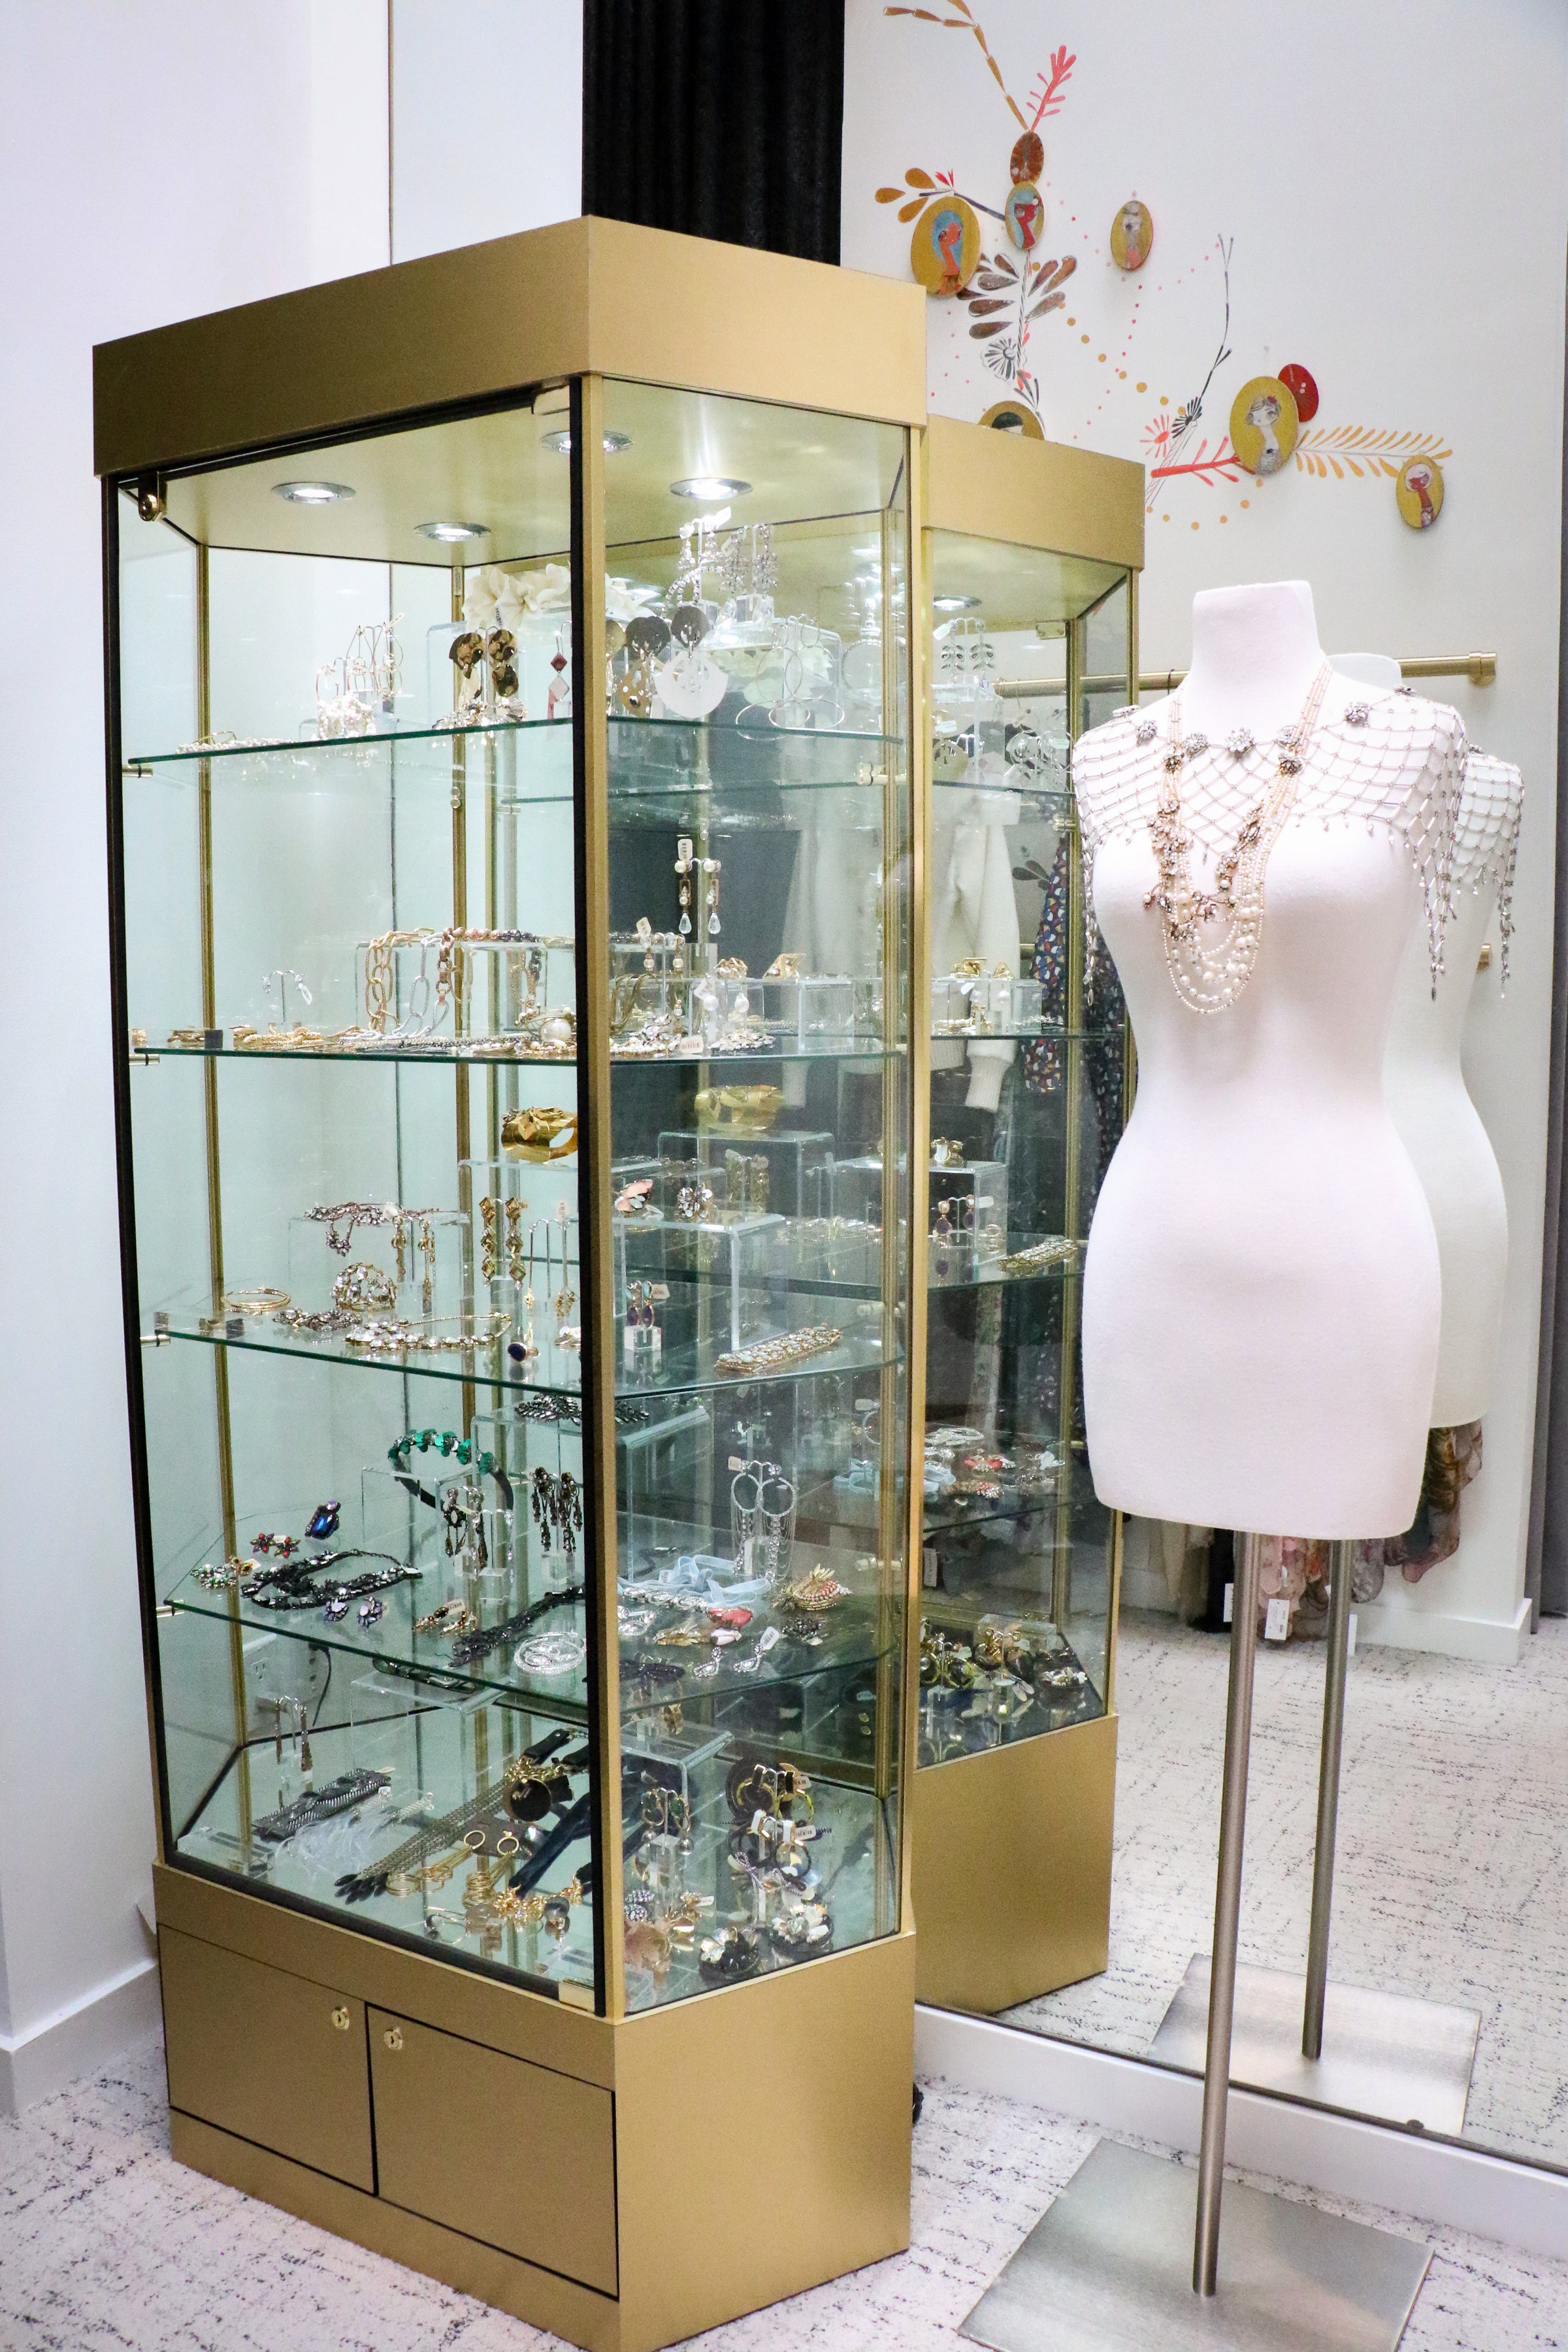 Store Images 20.jpg